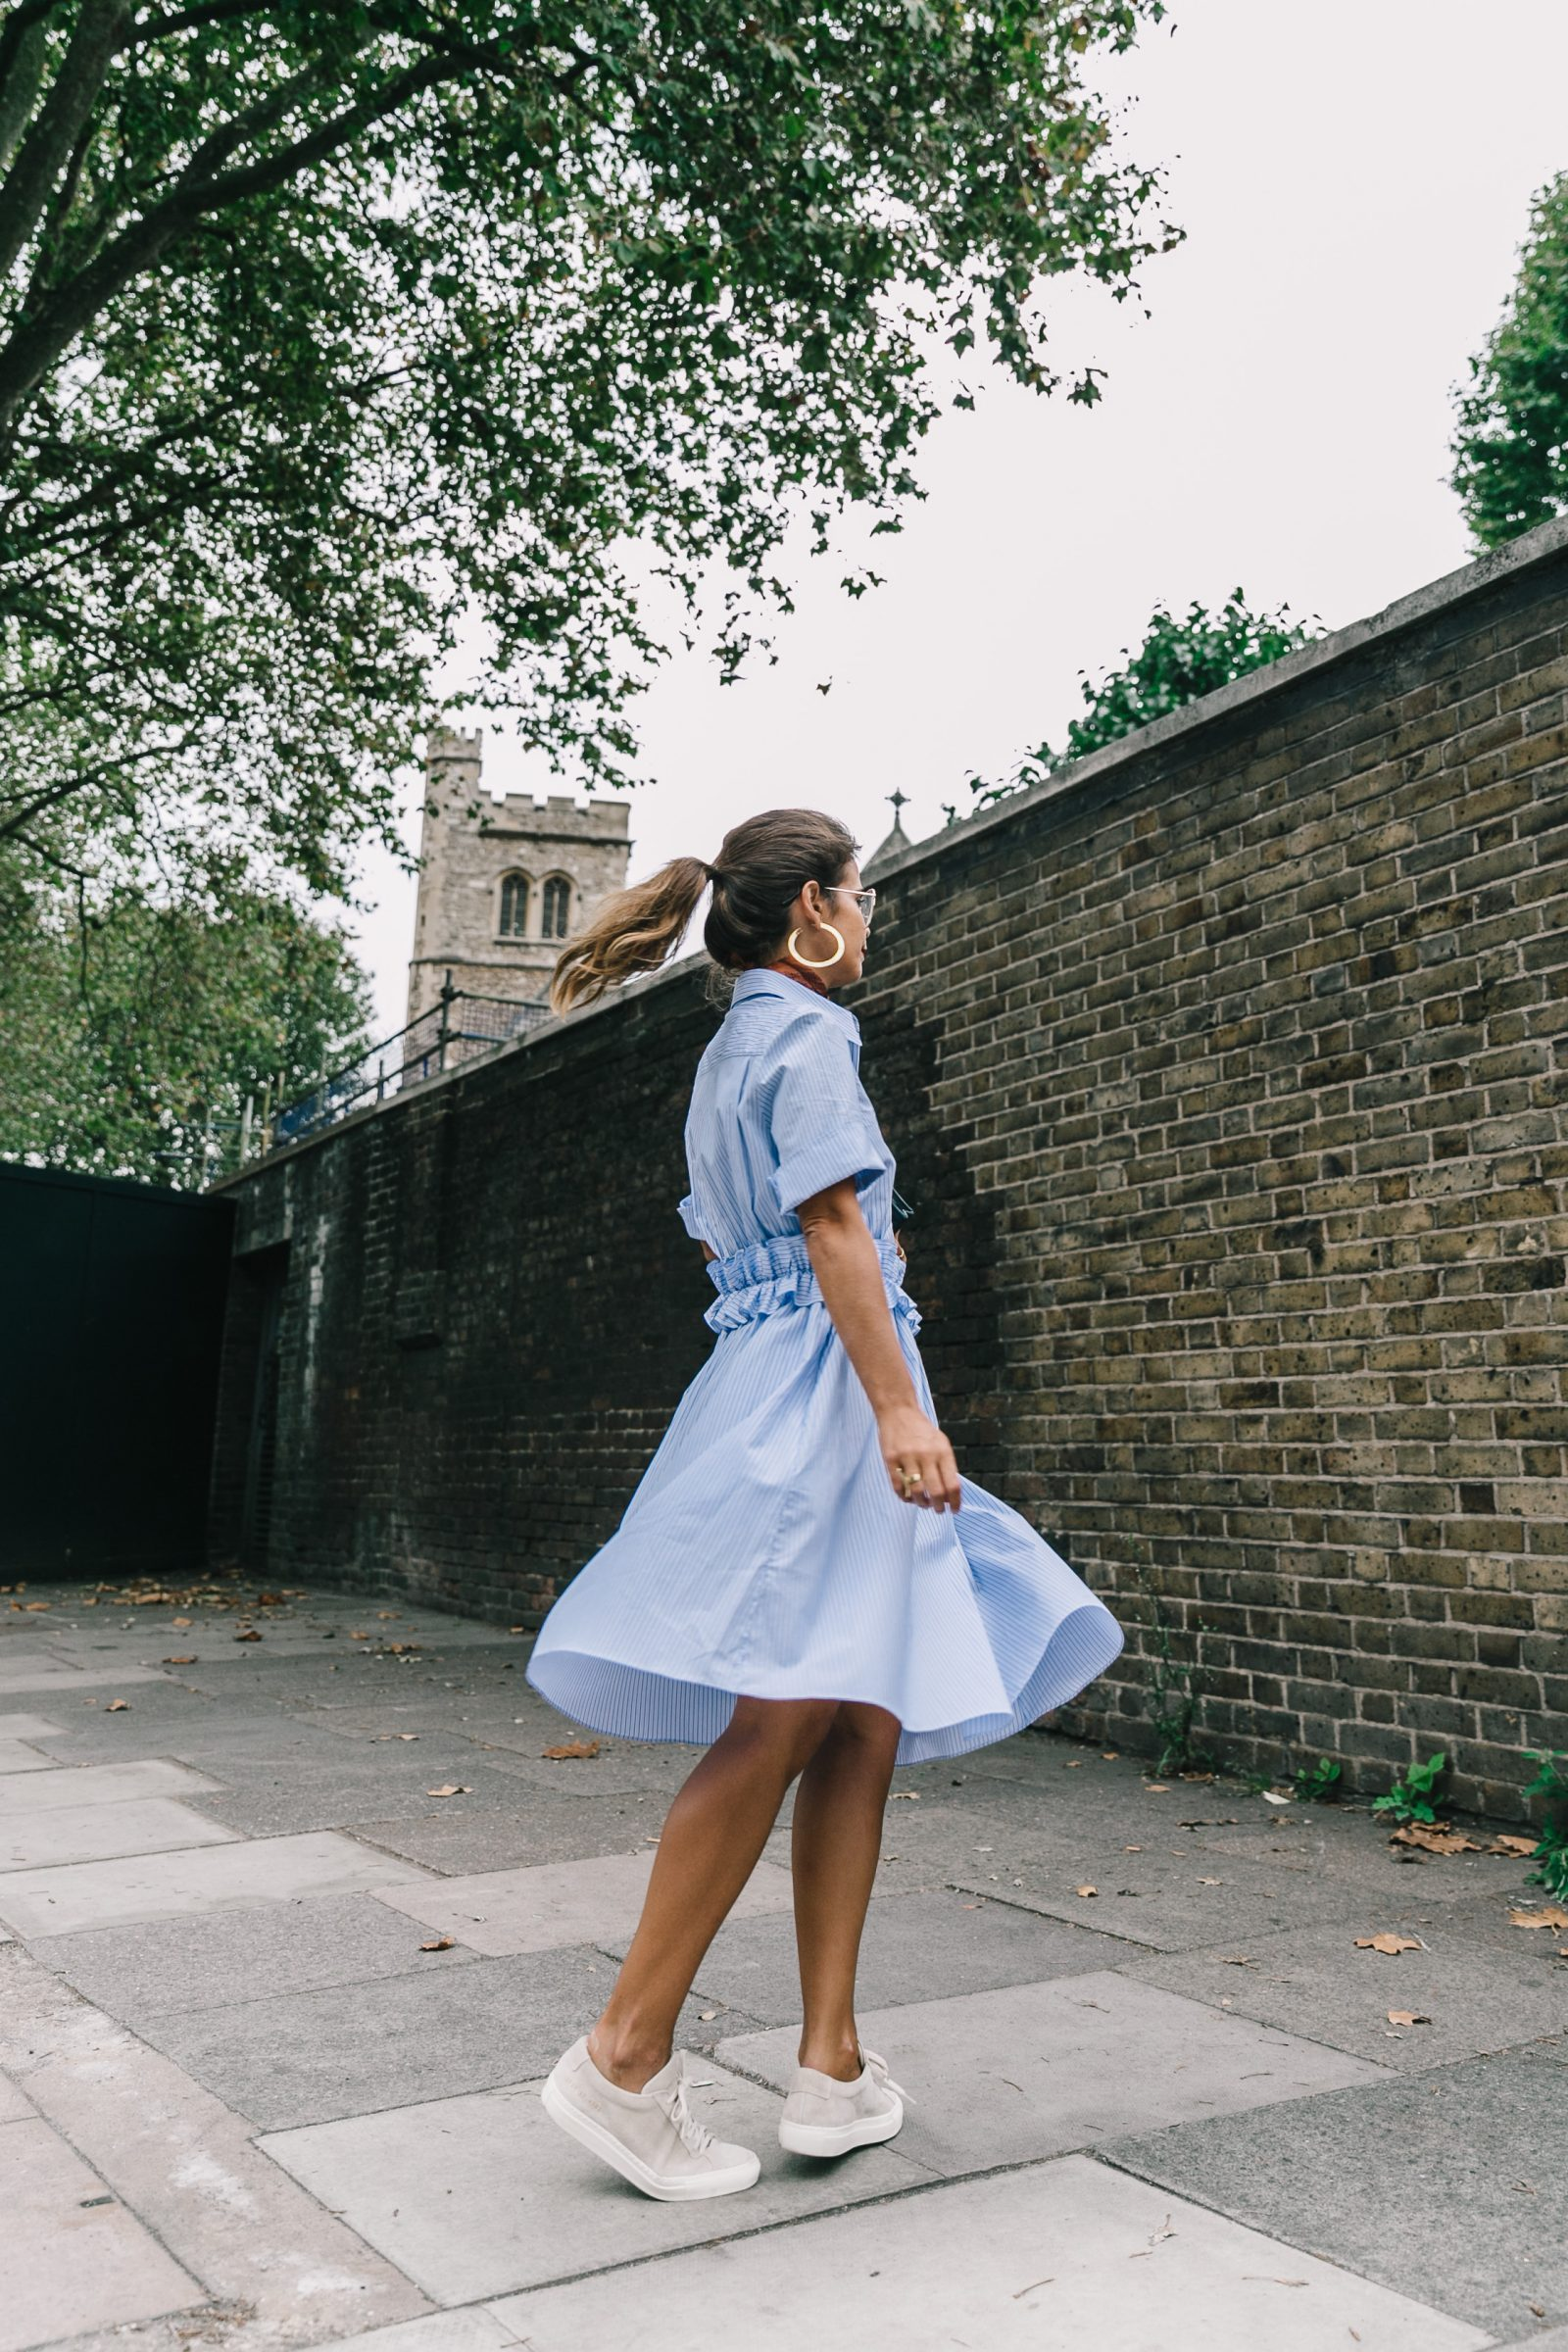 lfw-london_fashion_week_ss17-street_style-outfits-collage_vintage-vintage-stripped_dress-victoria_beckham-avenue_32-18